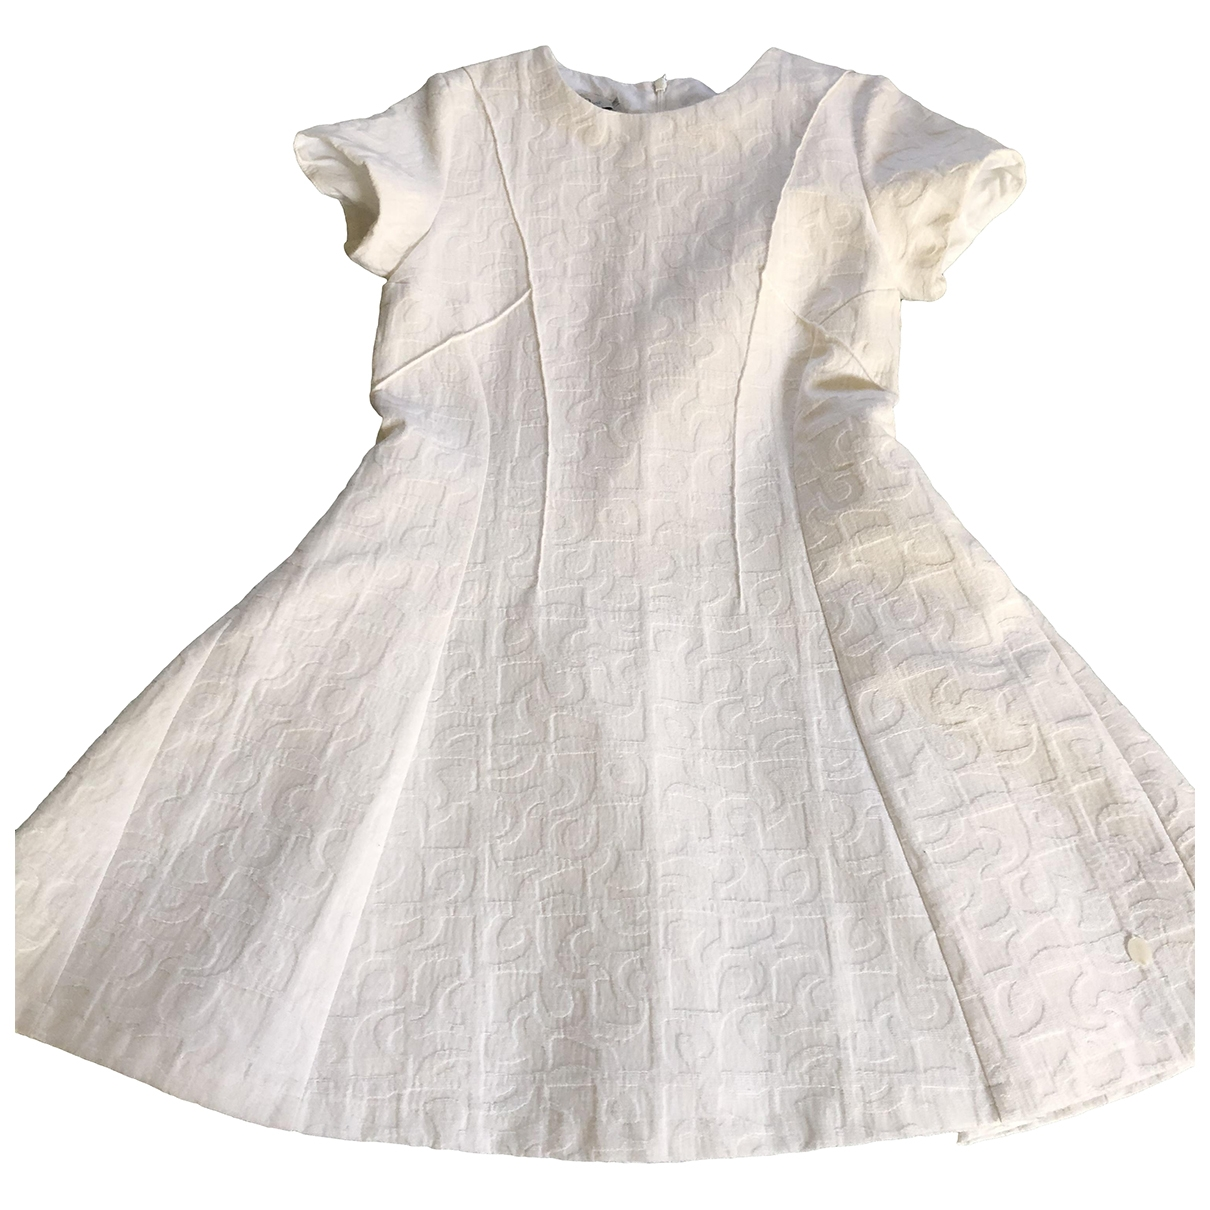 Dior \N White Cotton dress for Kids 10 years - up to 142cm FR